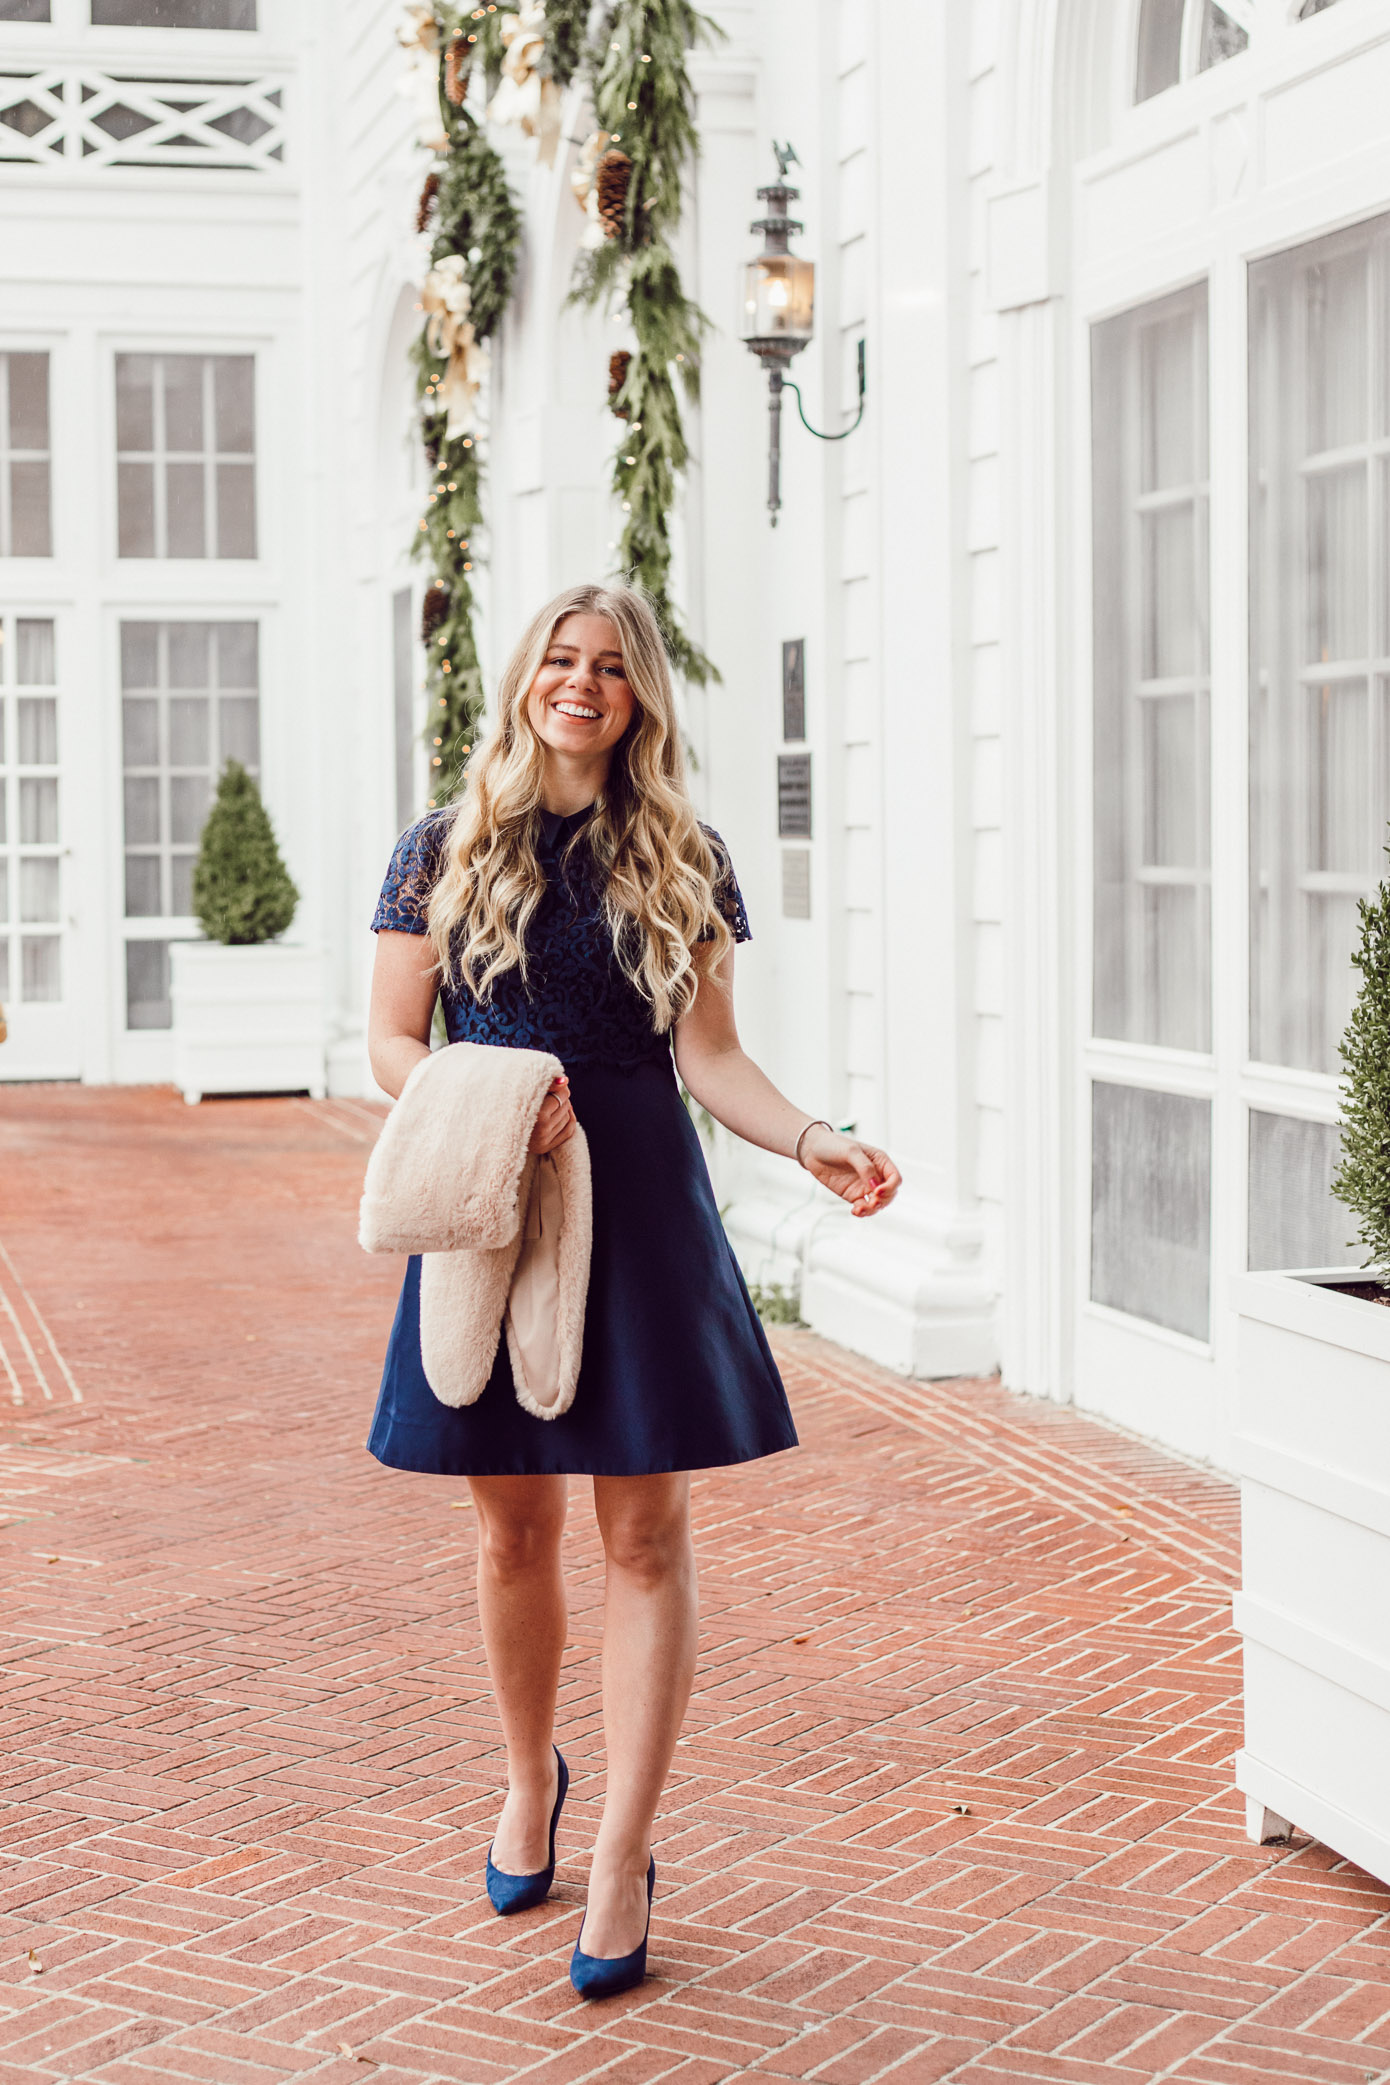 Finding the Perfect Holiday Party Dress with Rent the Runway on Louella Reese Life & Style Blog   Navy Lace Mini Dress, Christmas Party Dress